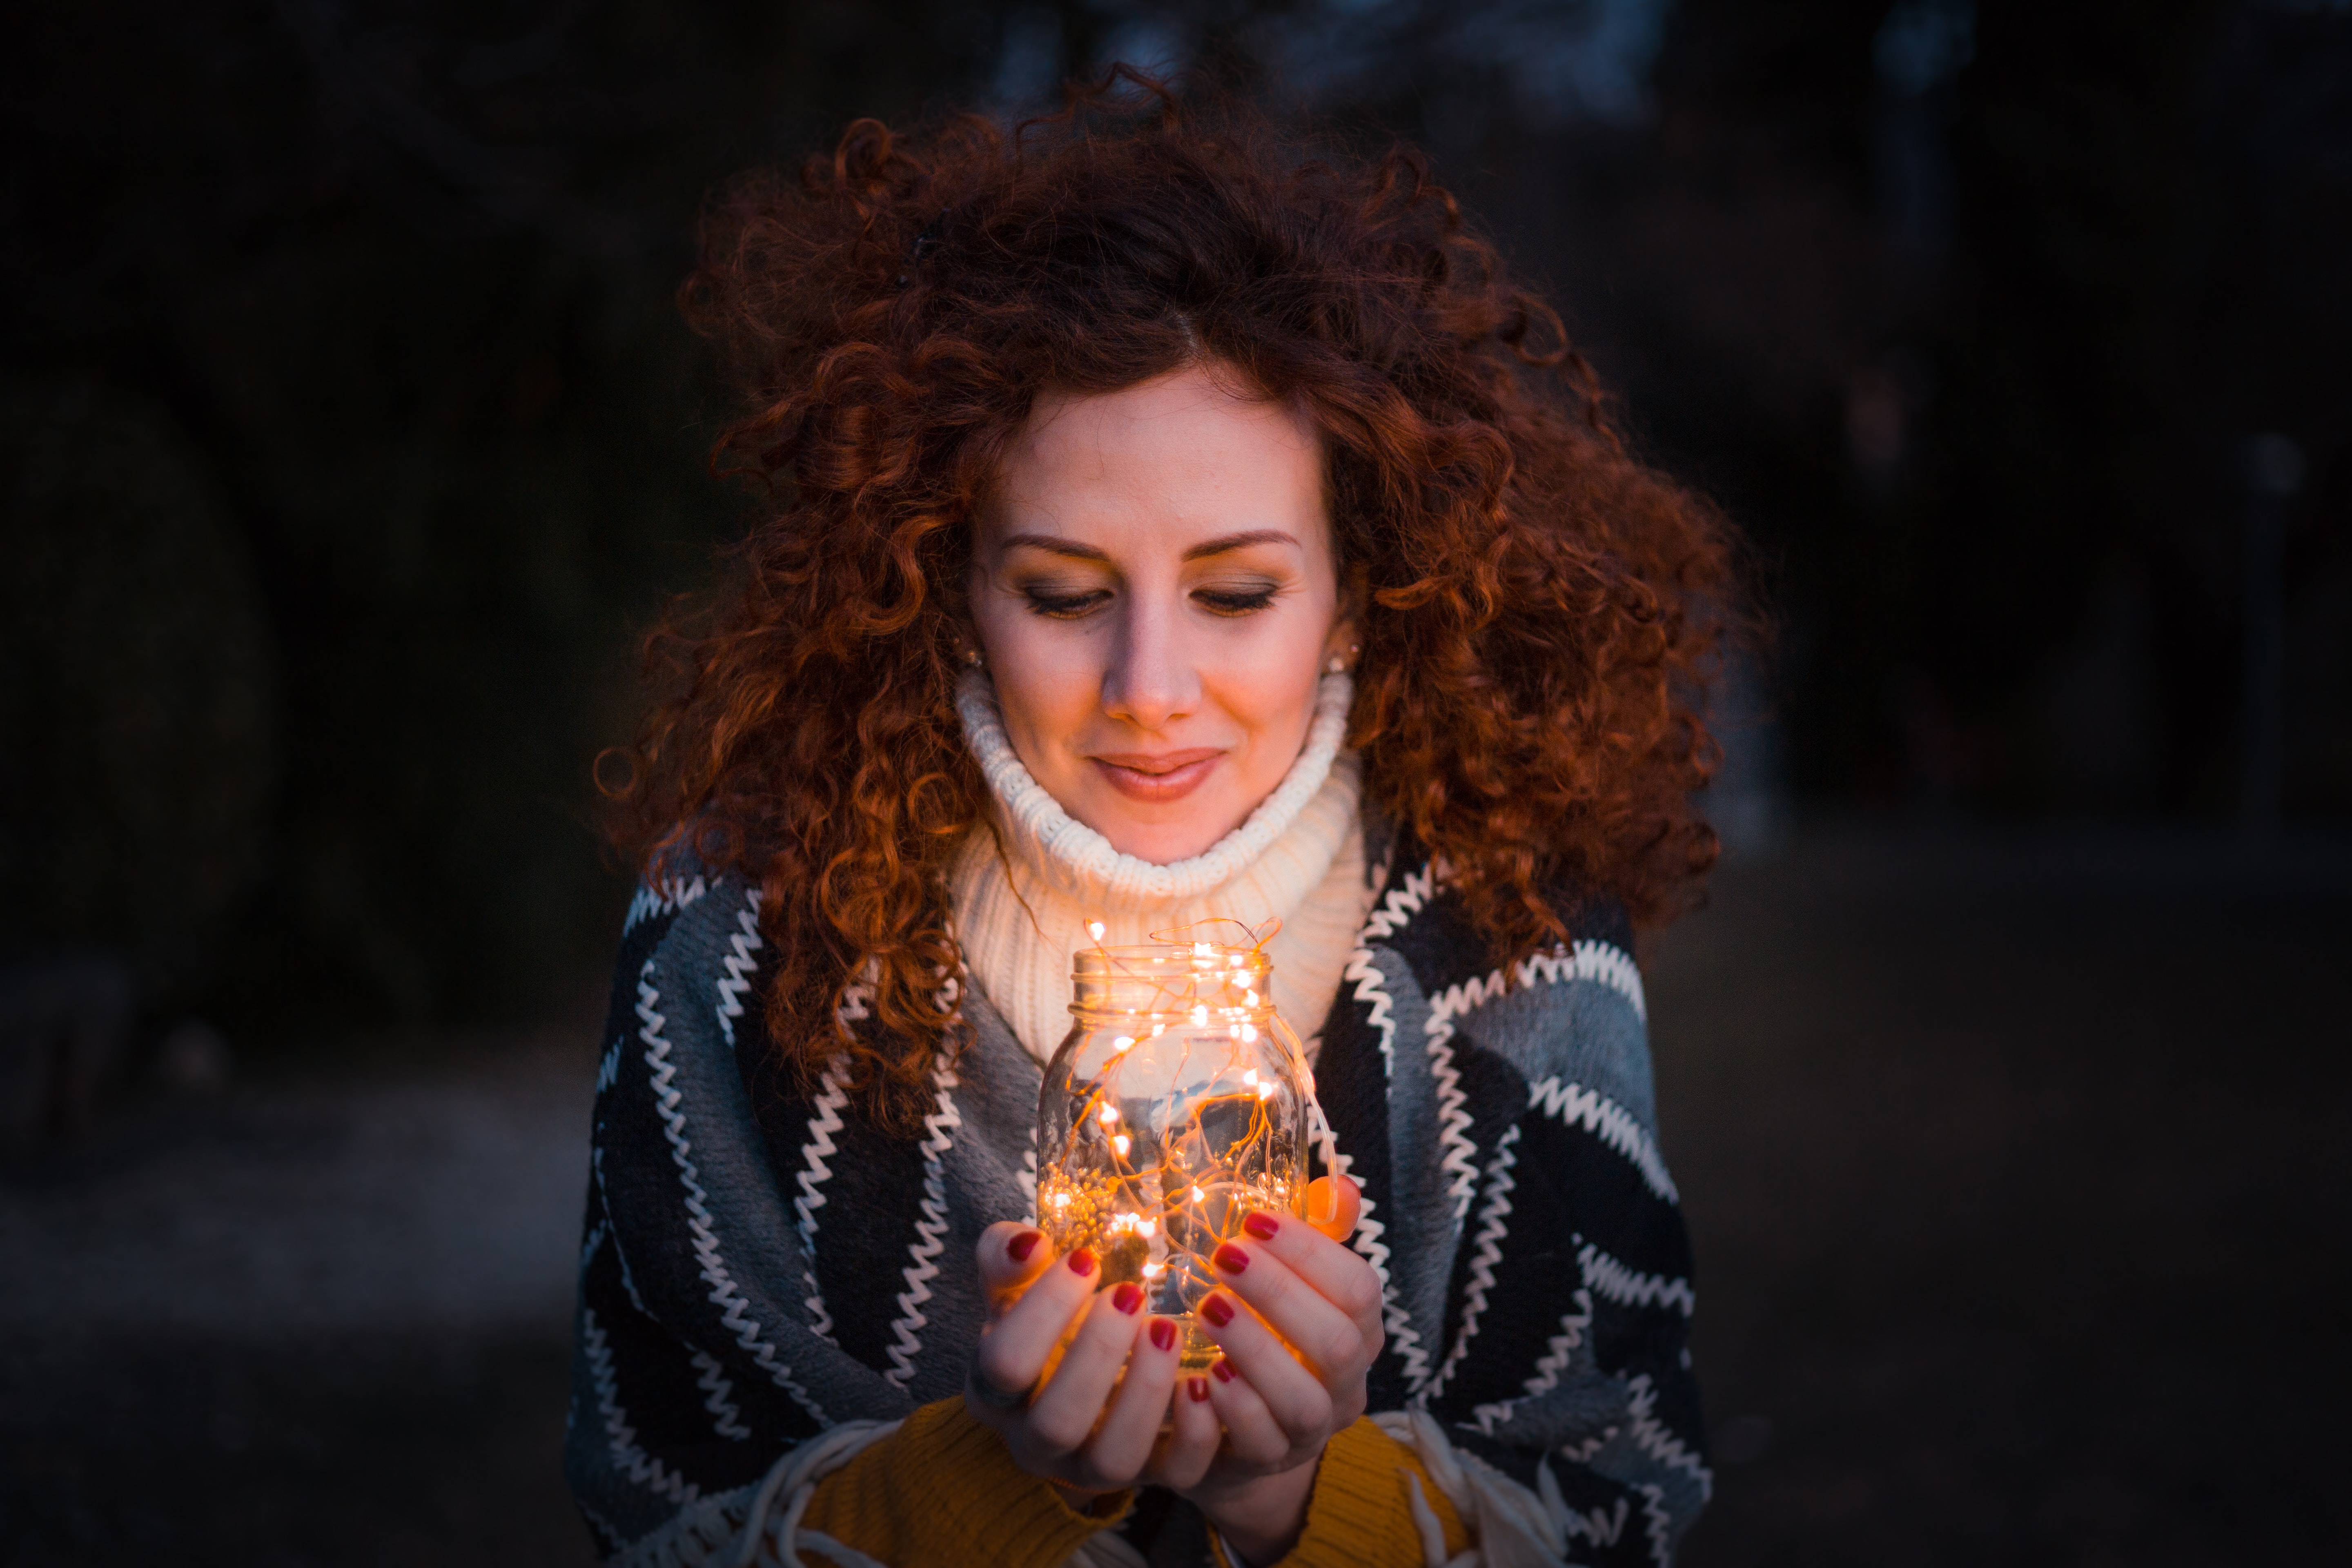 Woman holding clear glass jar filled with lights photo